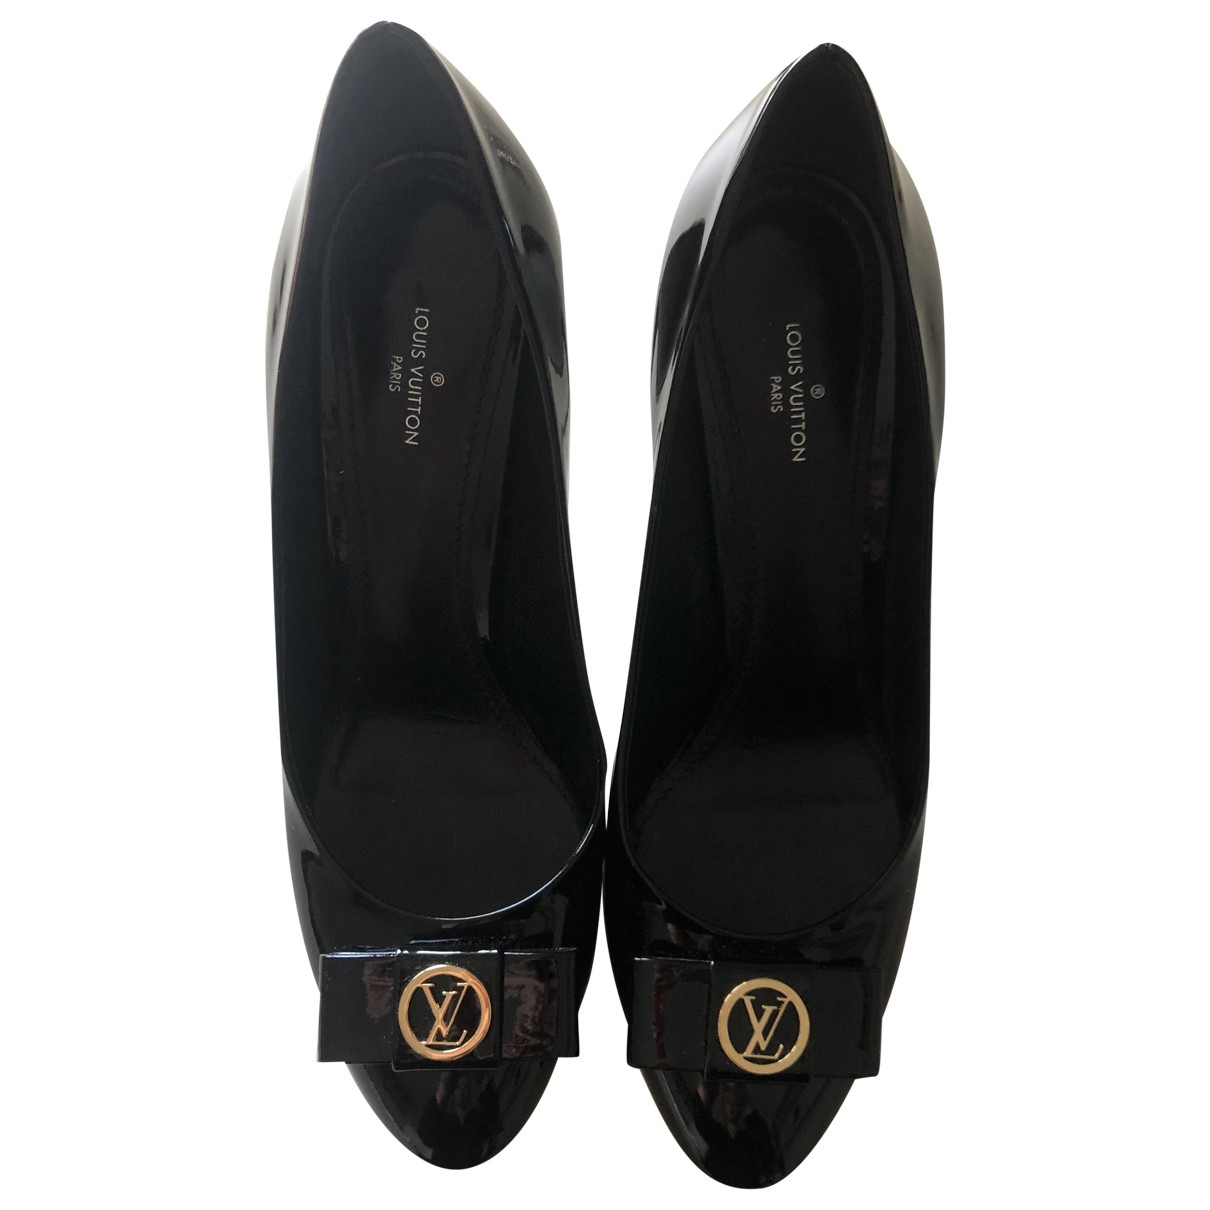 Louis Vuitton \N Black Patent leather Heels for Women 39 EU